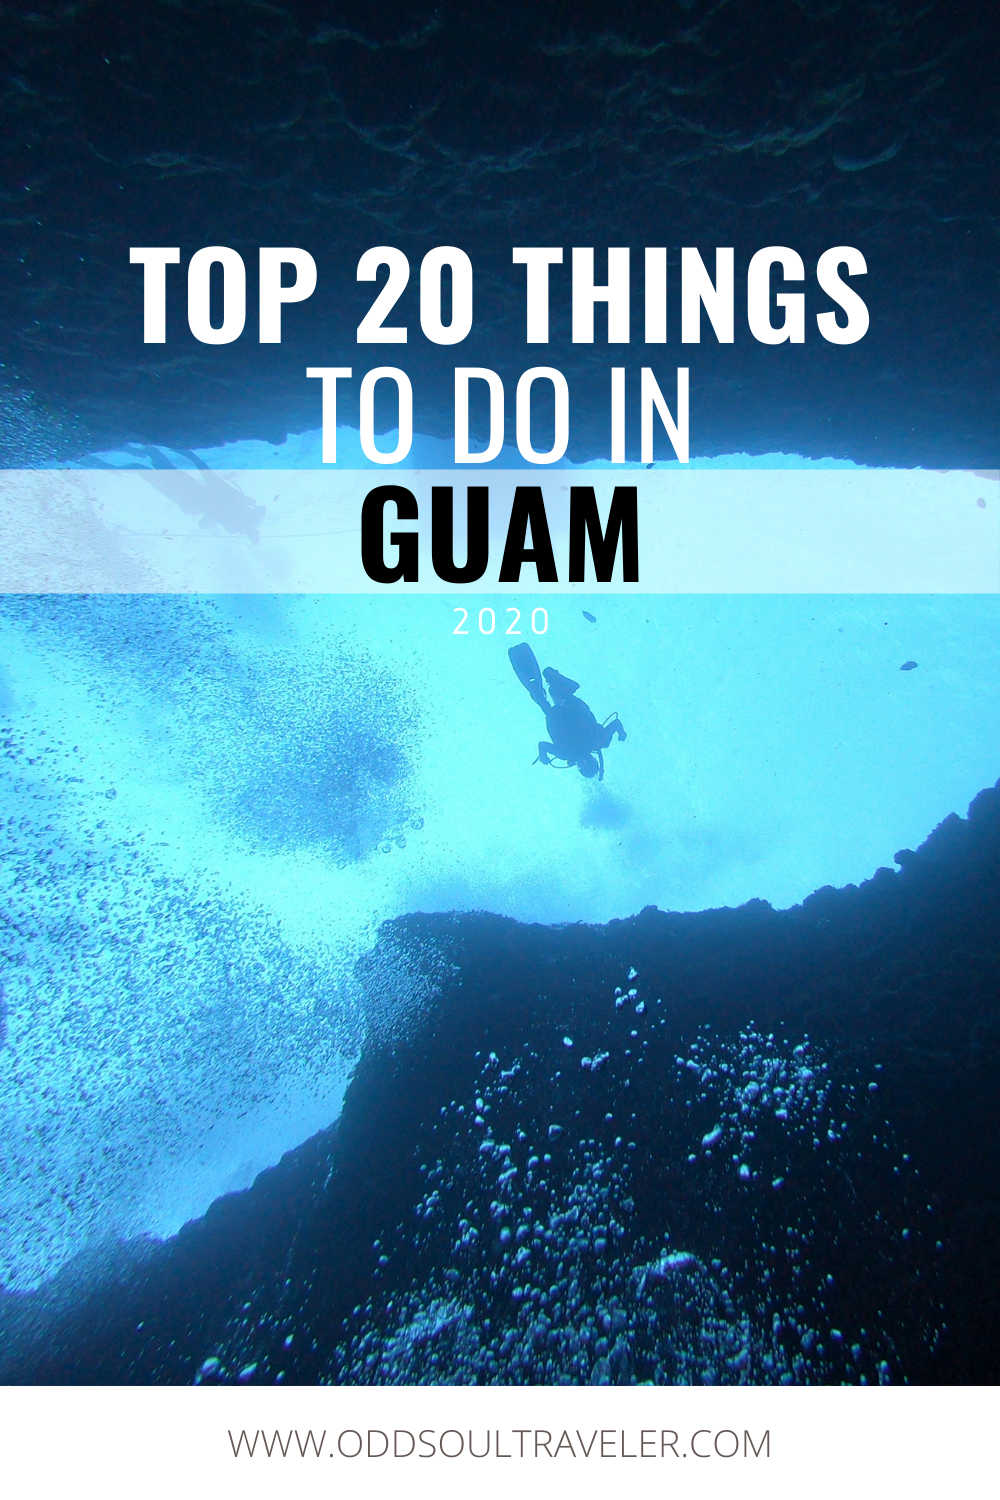 Top 20 Things To Do in Guam